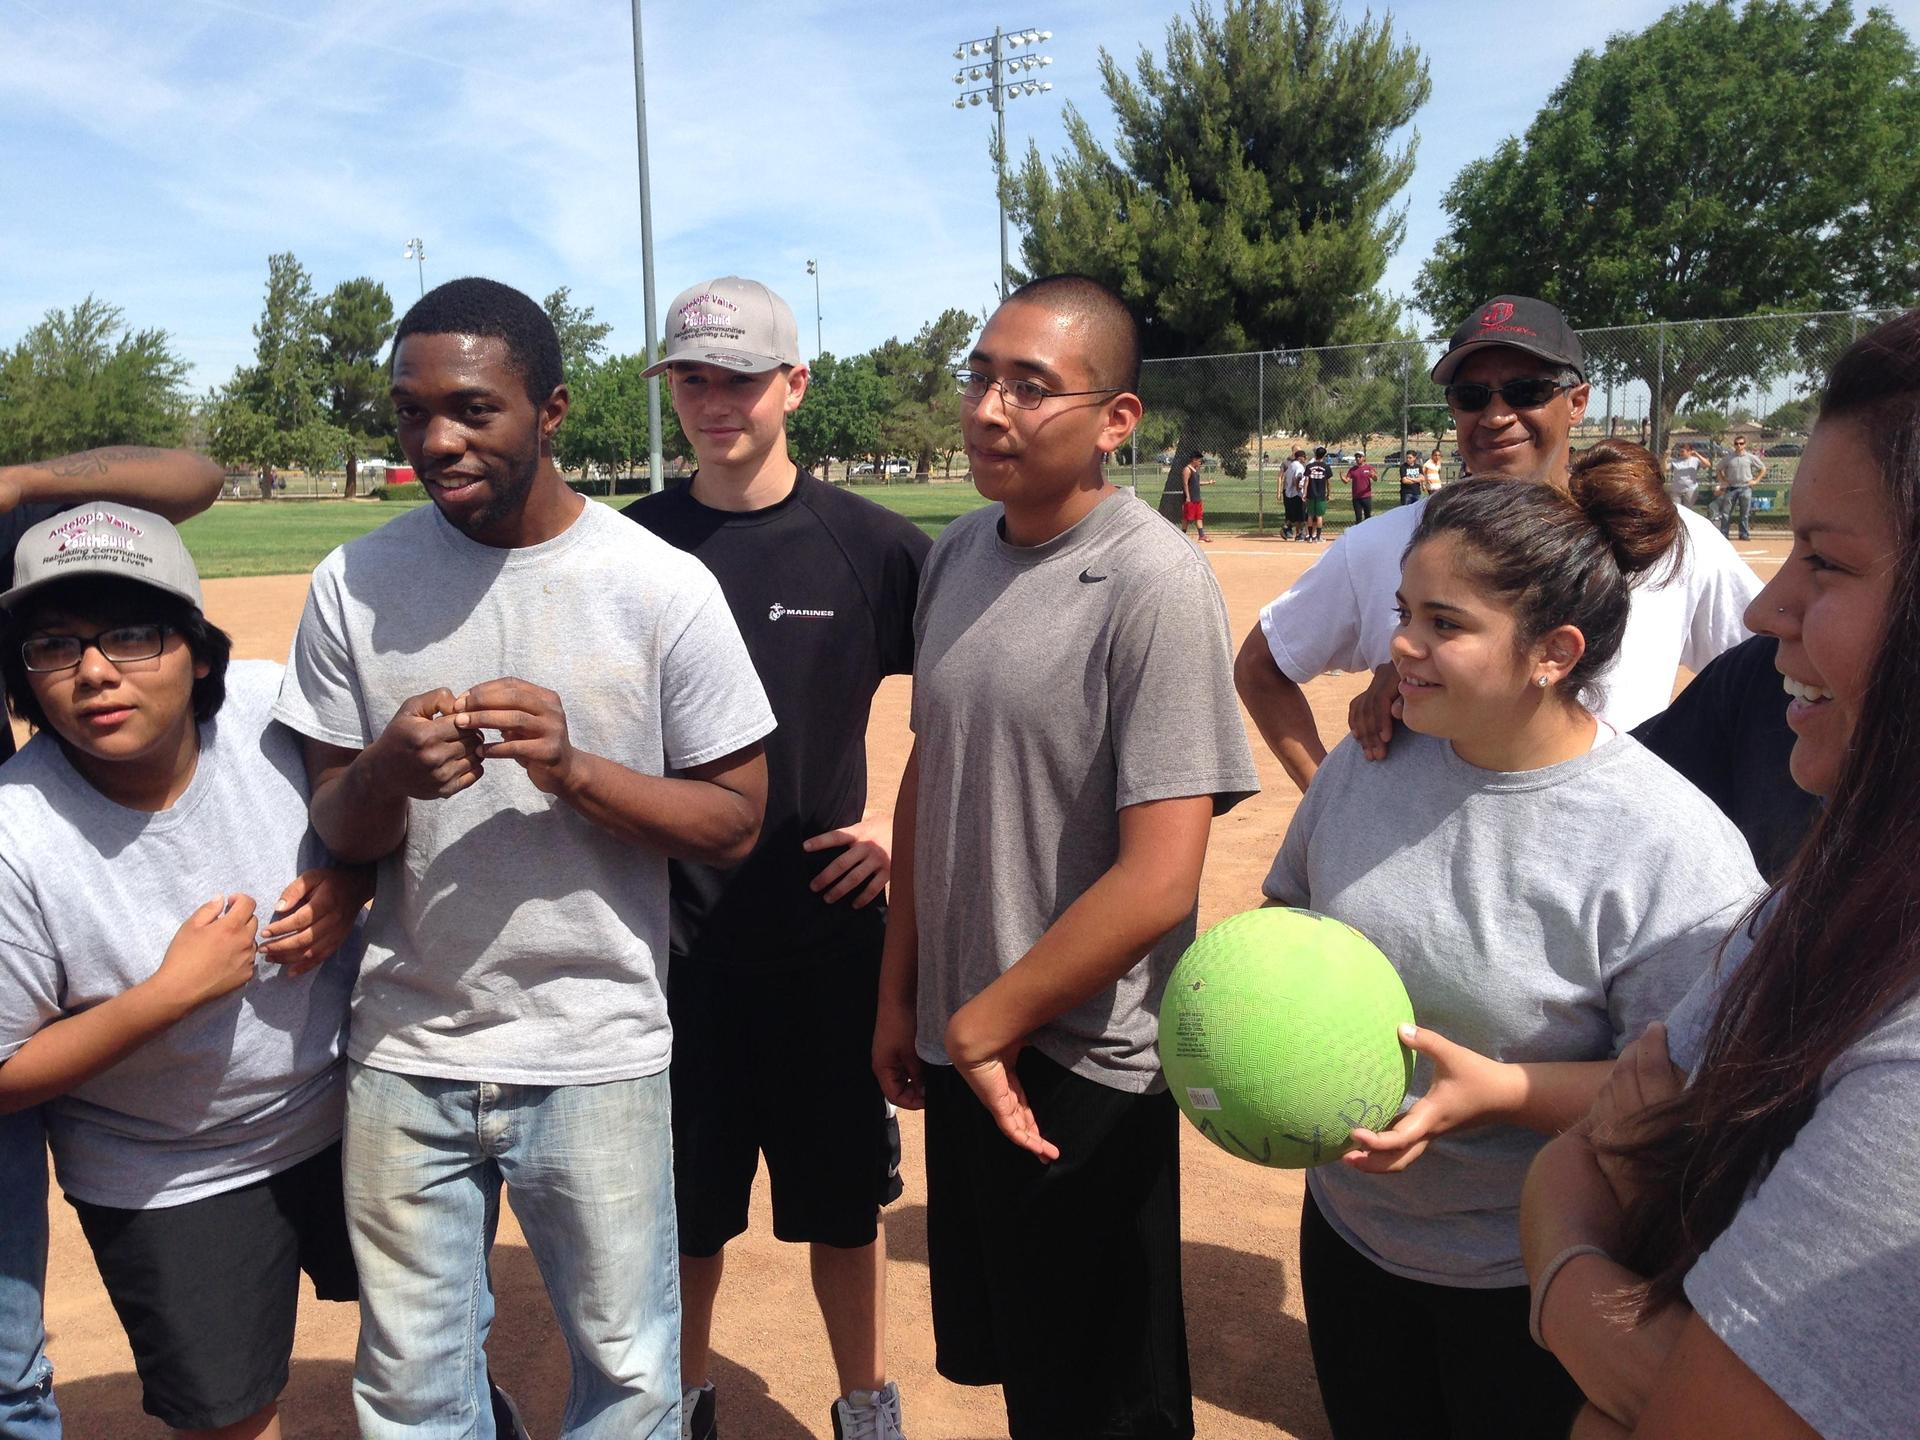 Palmdale students with a kickball